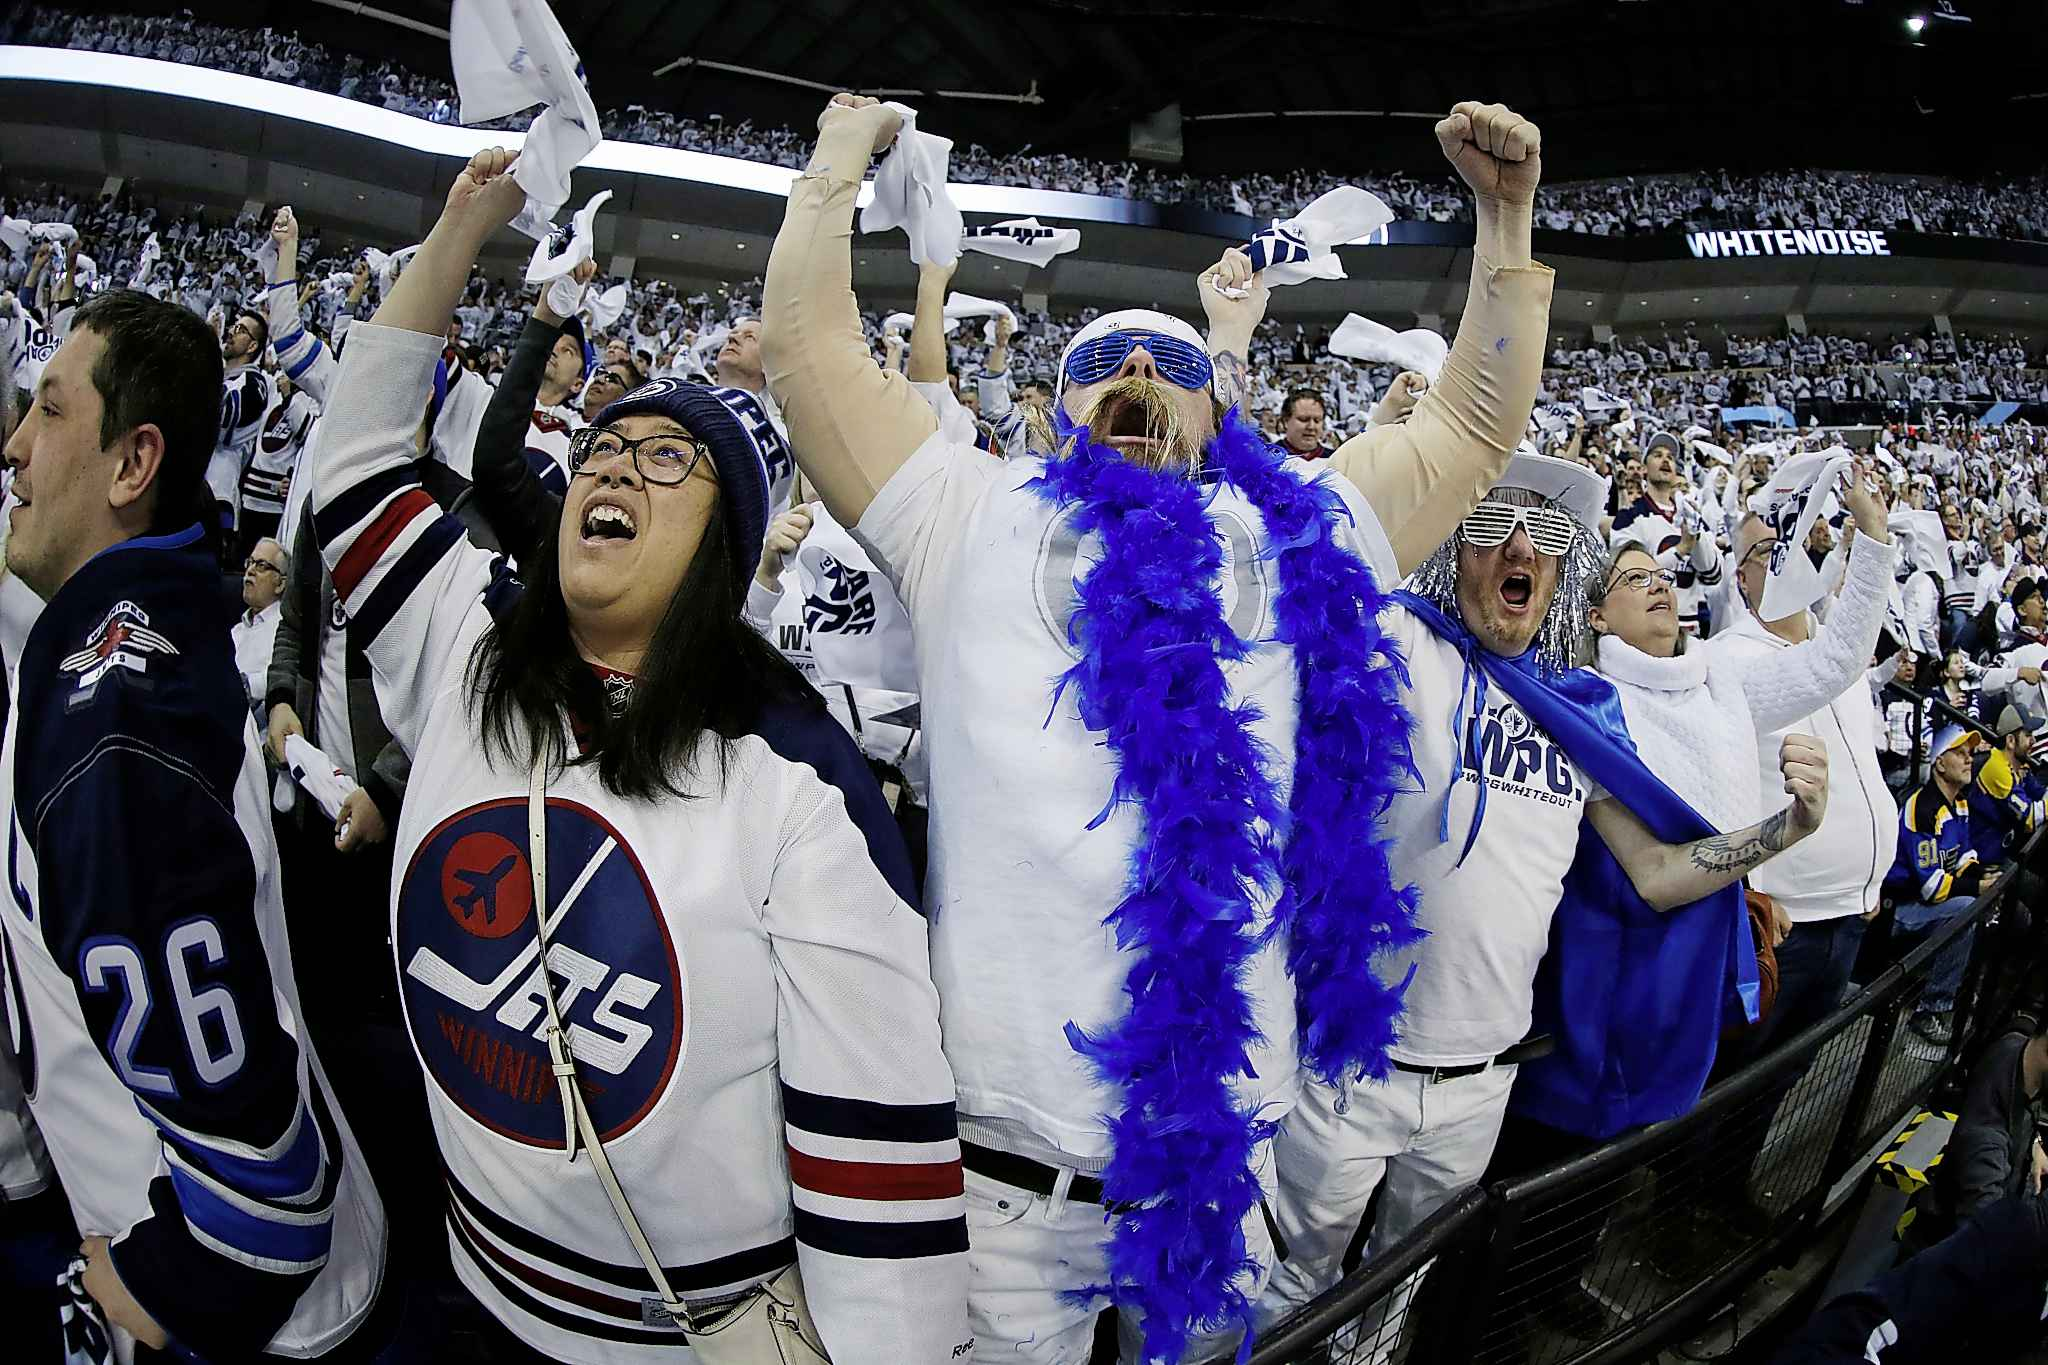 Winnipeg Jets gear easily identifies Winnipeggers wherever they are. (John Woods / The Canadian Press files)